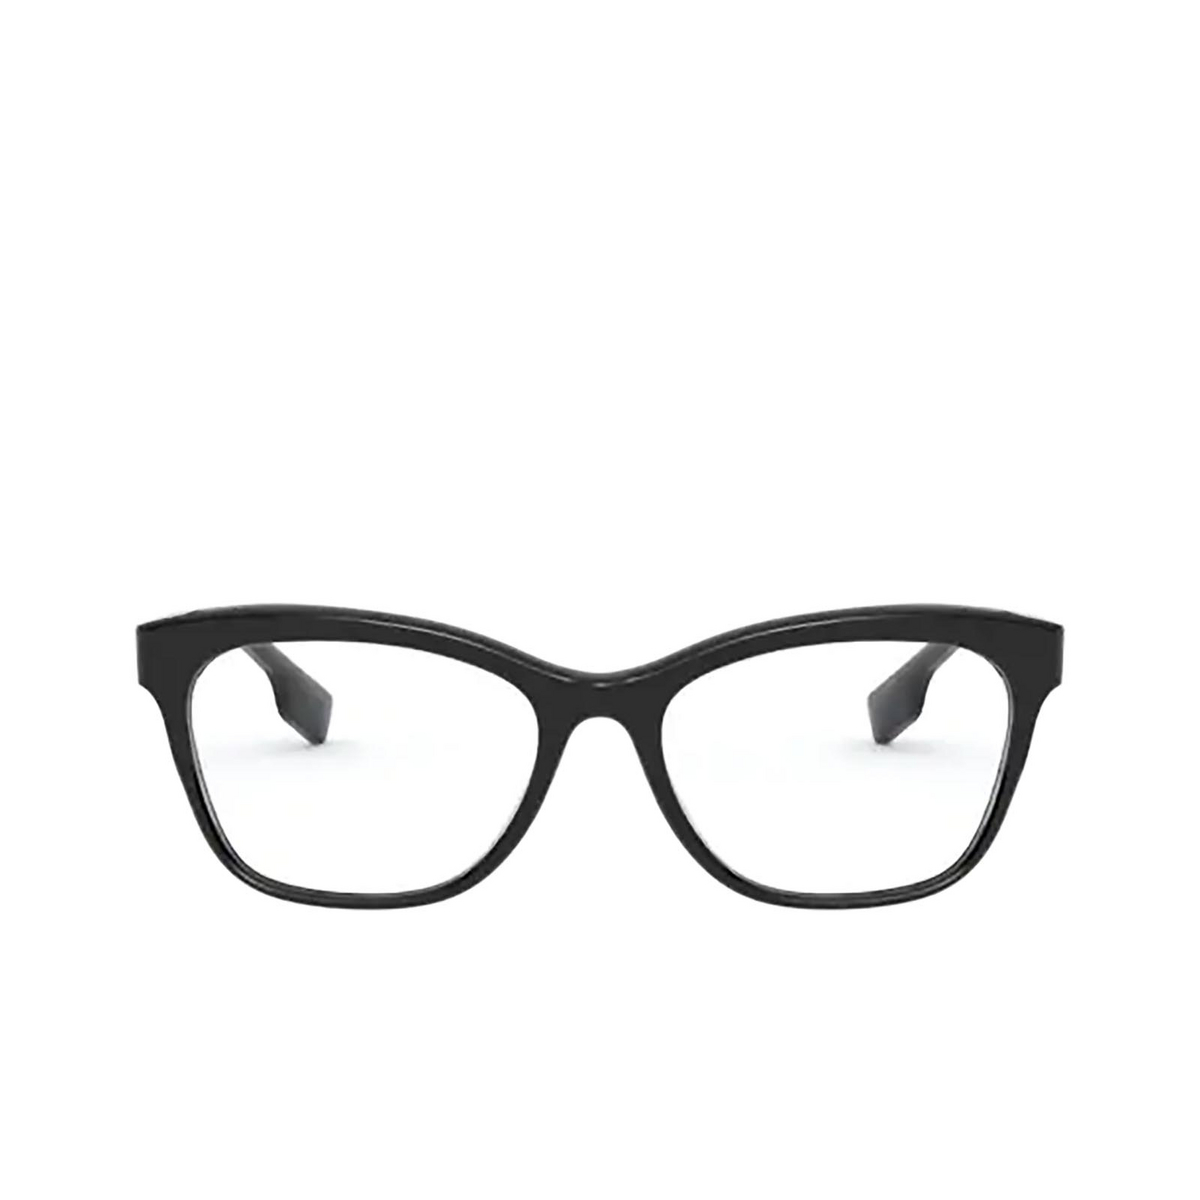 Burberry® Square Eyeglasses: Mildred BE2323 color Black 3001 - front view.